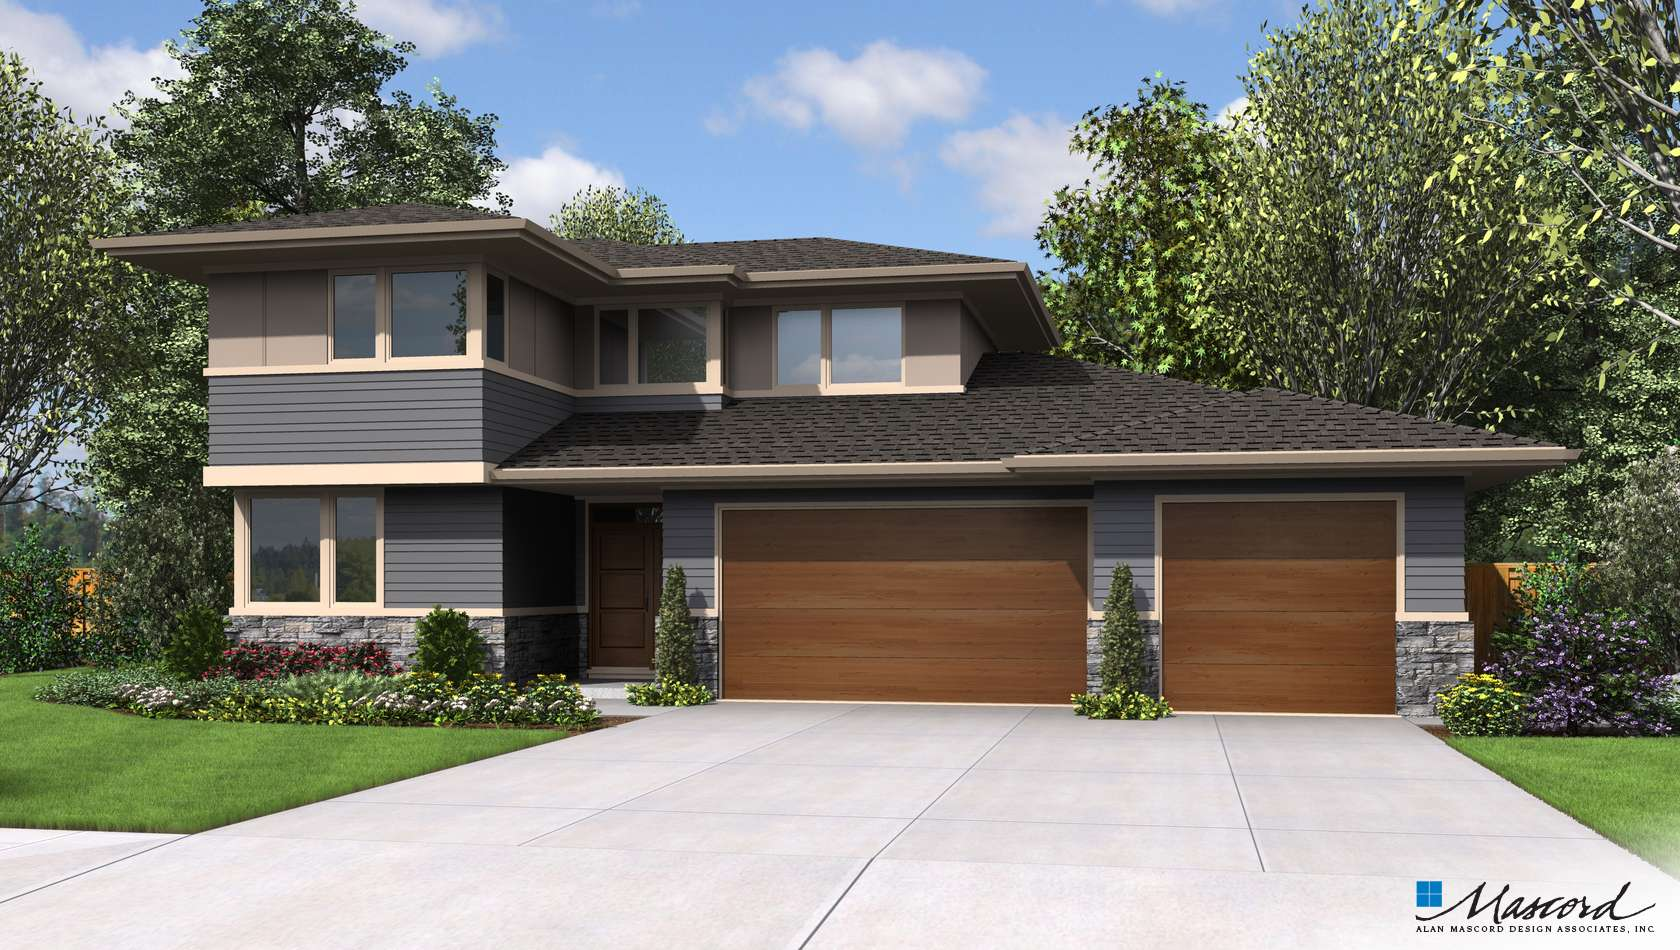 Main image for house plan 22180BA: The Perry